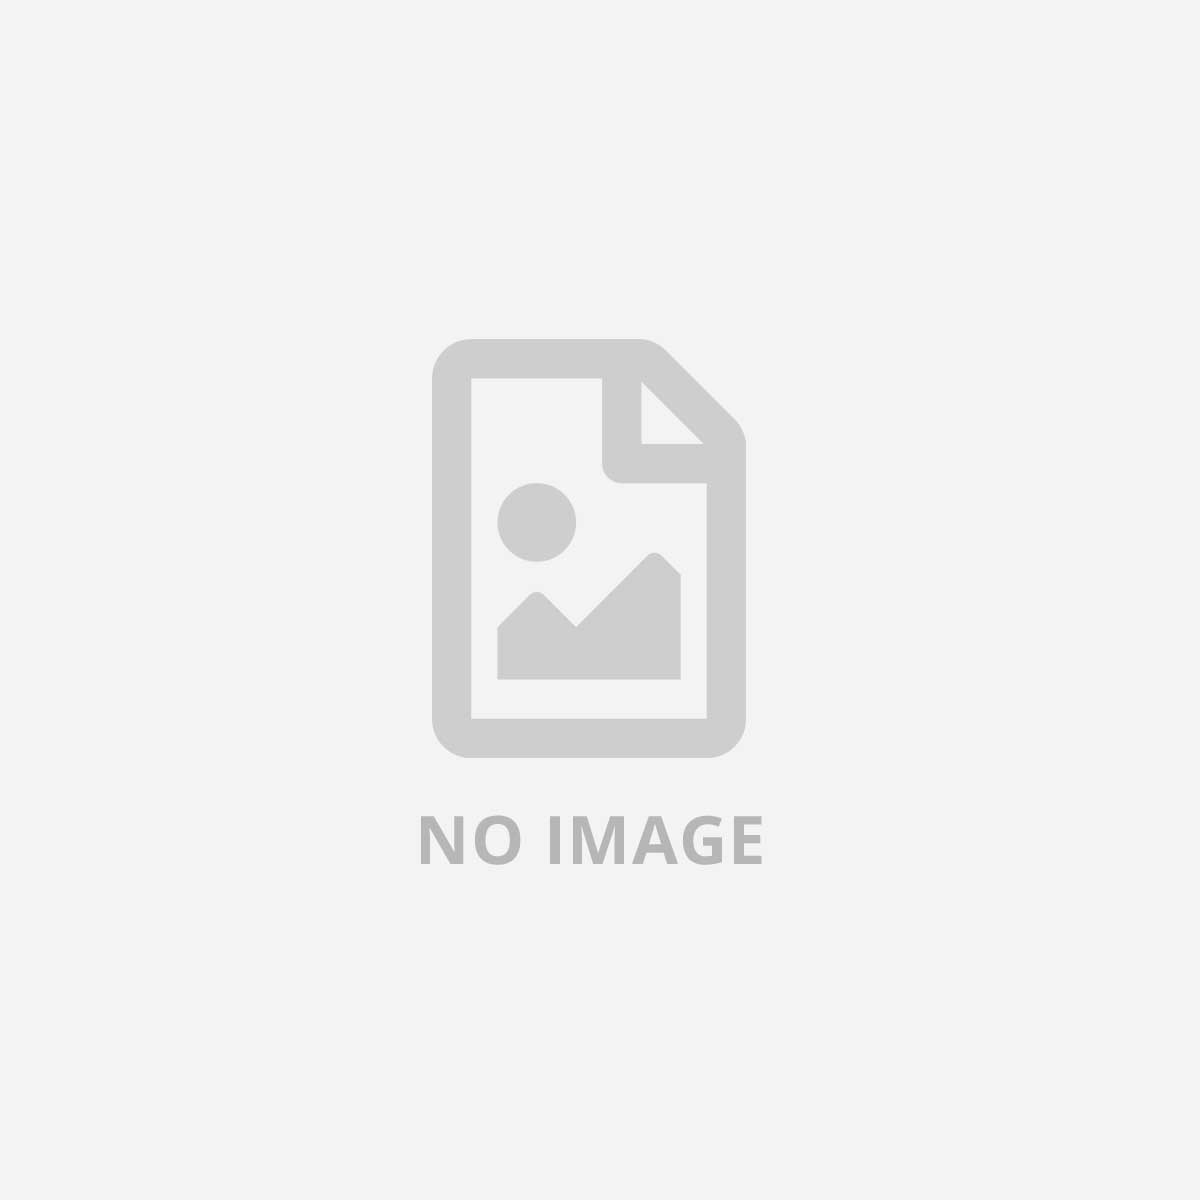 SCOTCH NASTRO TRASP  508 19MMX66M